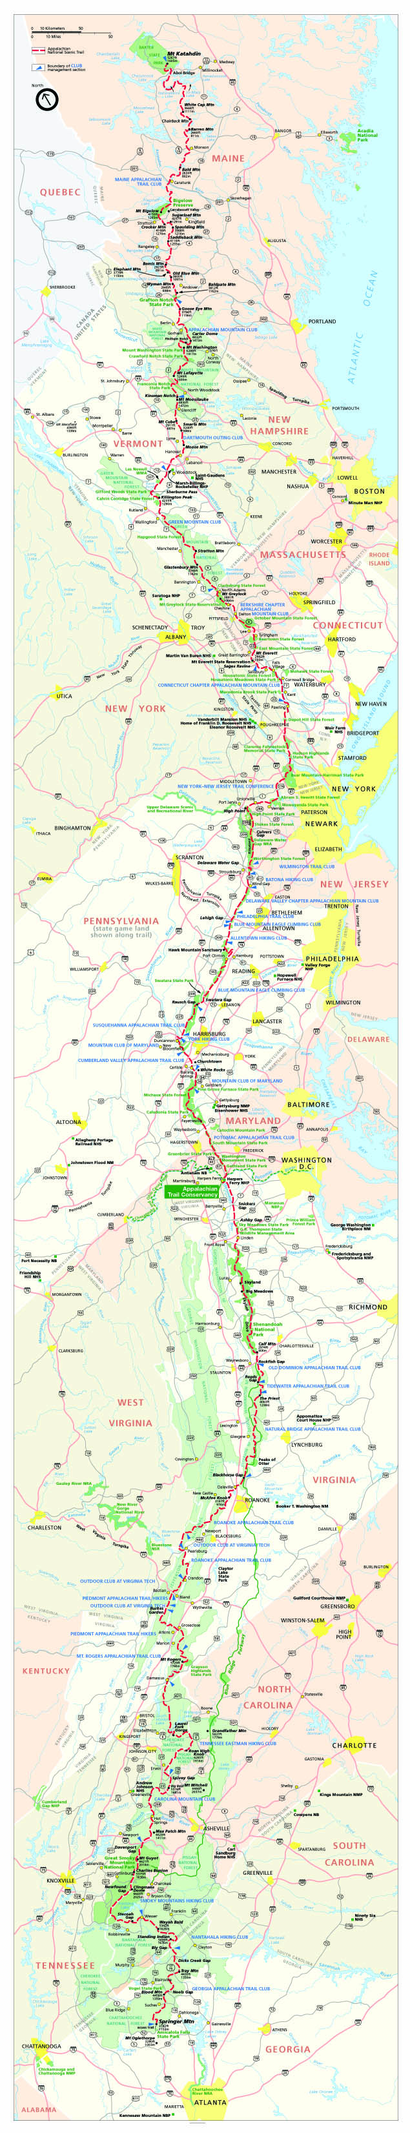 Appalachian Trail Map copy.png